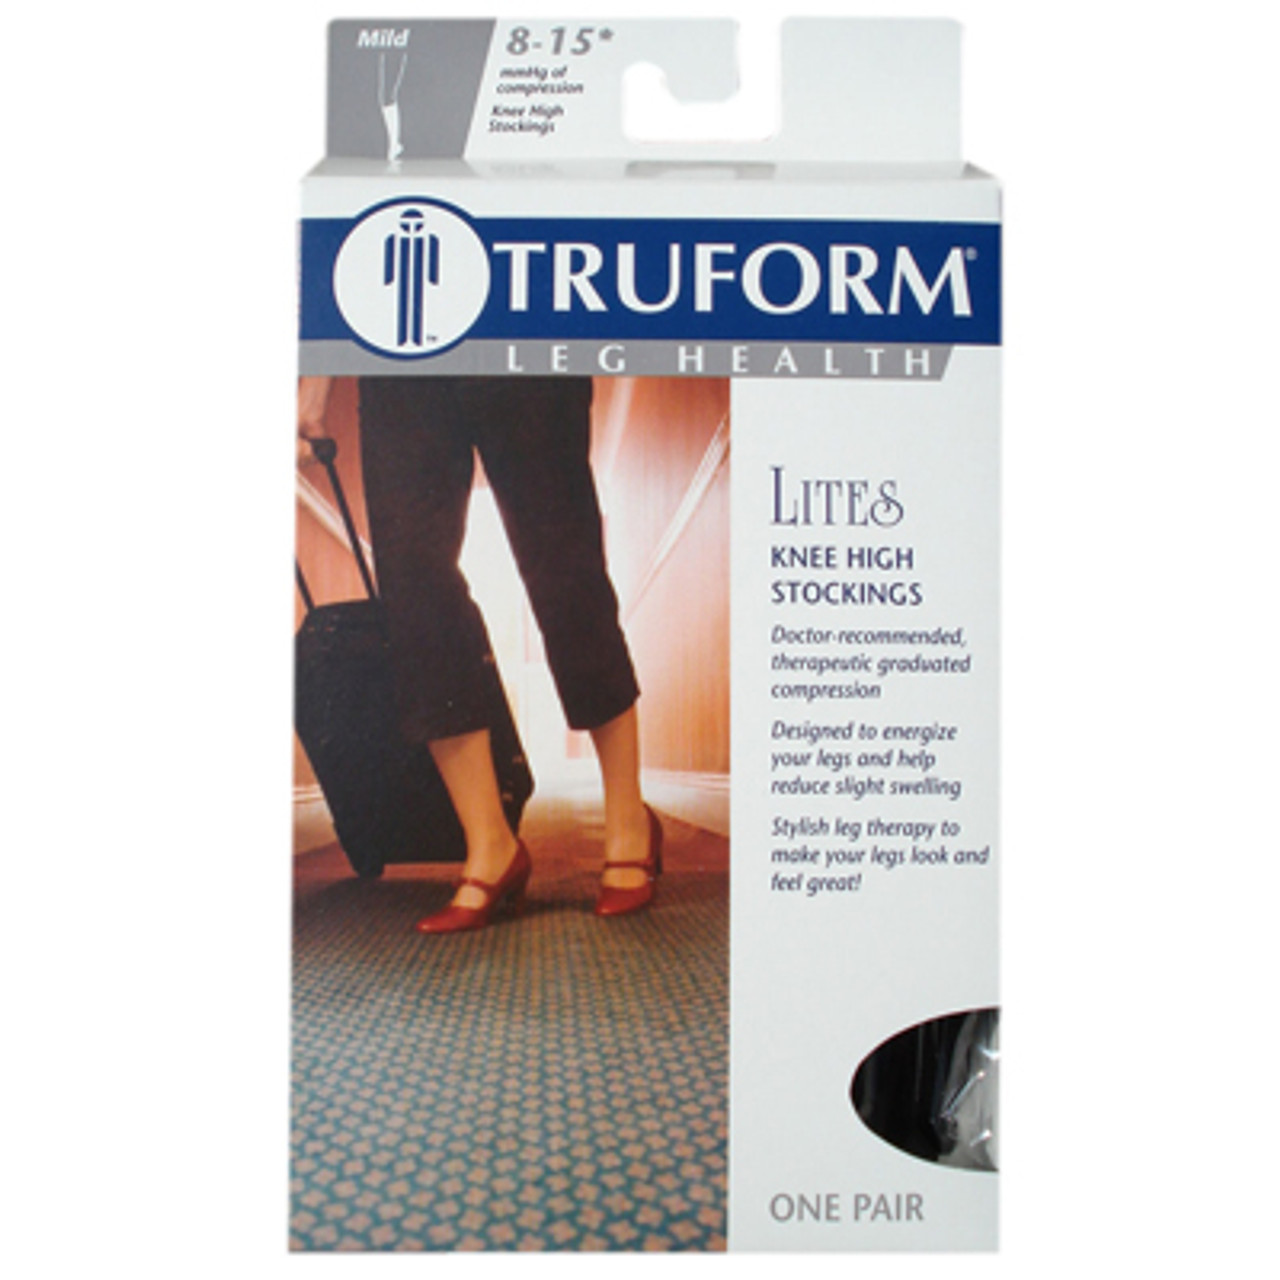 8-15 Knee High - Compression Stockings